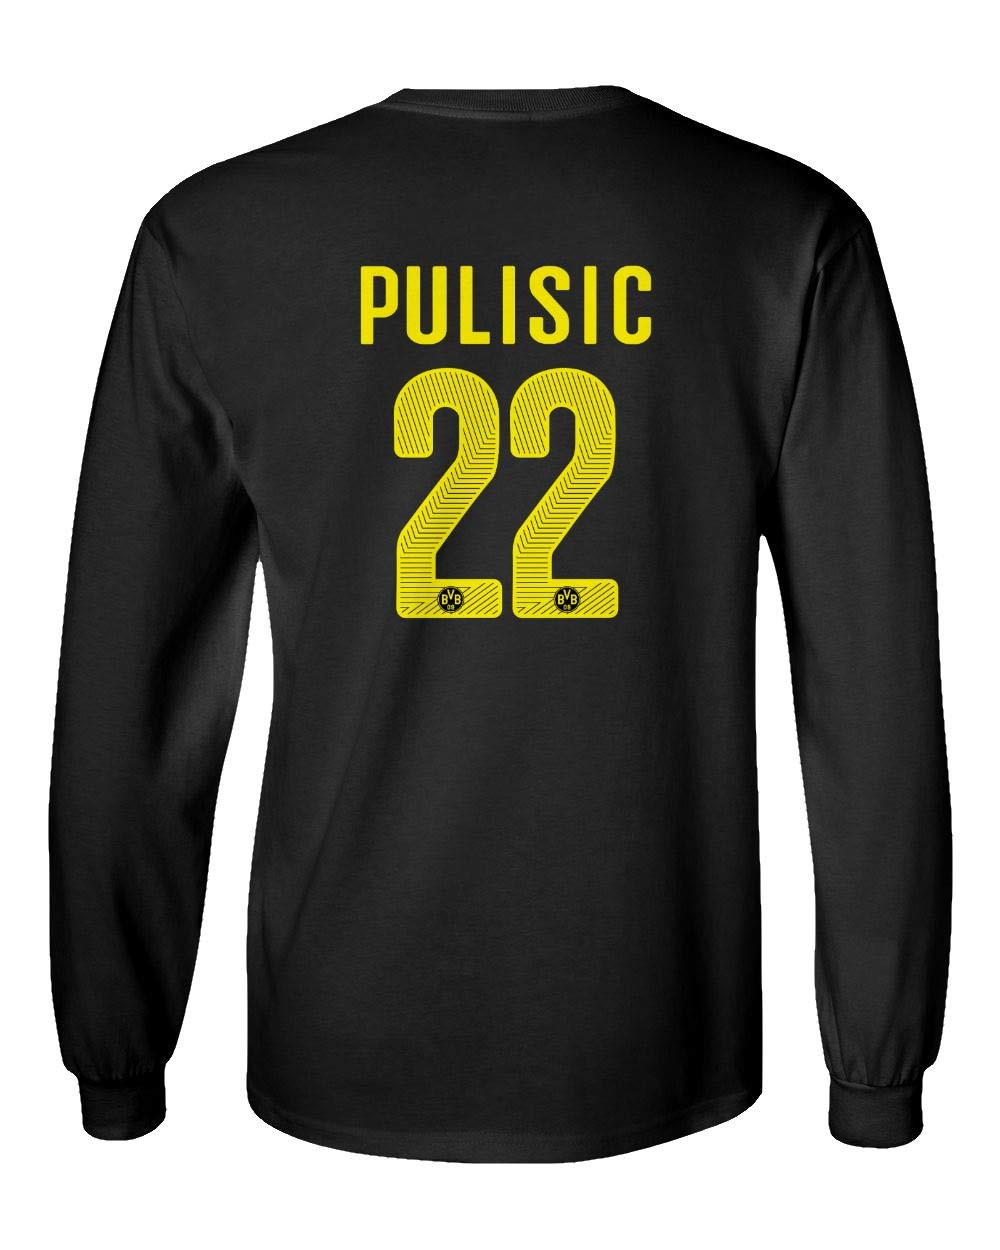 Amazon.com  Spark Apparel Soccer Jersey Style Shirt  22 Pulisic Men s Long  Sleeve T-Shirt  Sports   Outdoors 97580687a